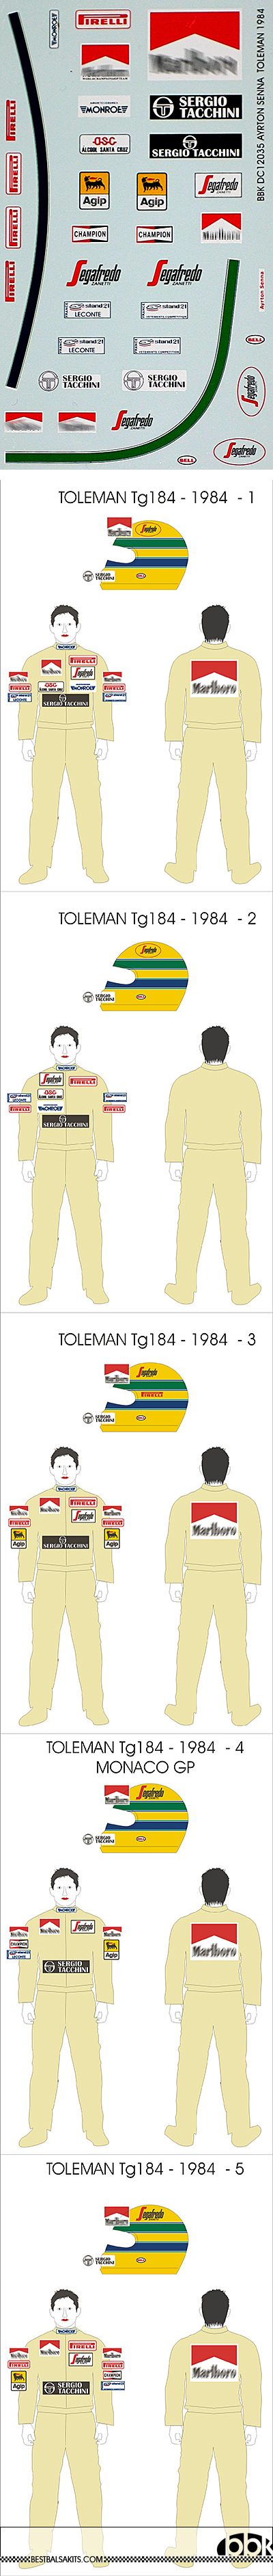 BBK 1/12 SENNA DECAL TOLEMAN 1984